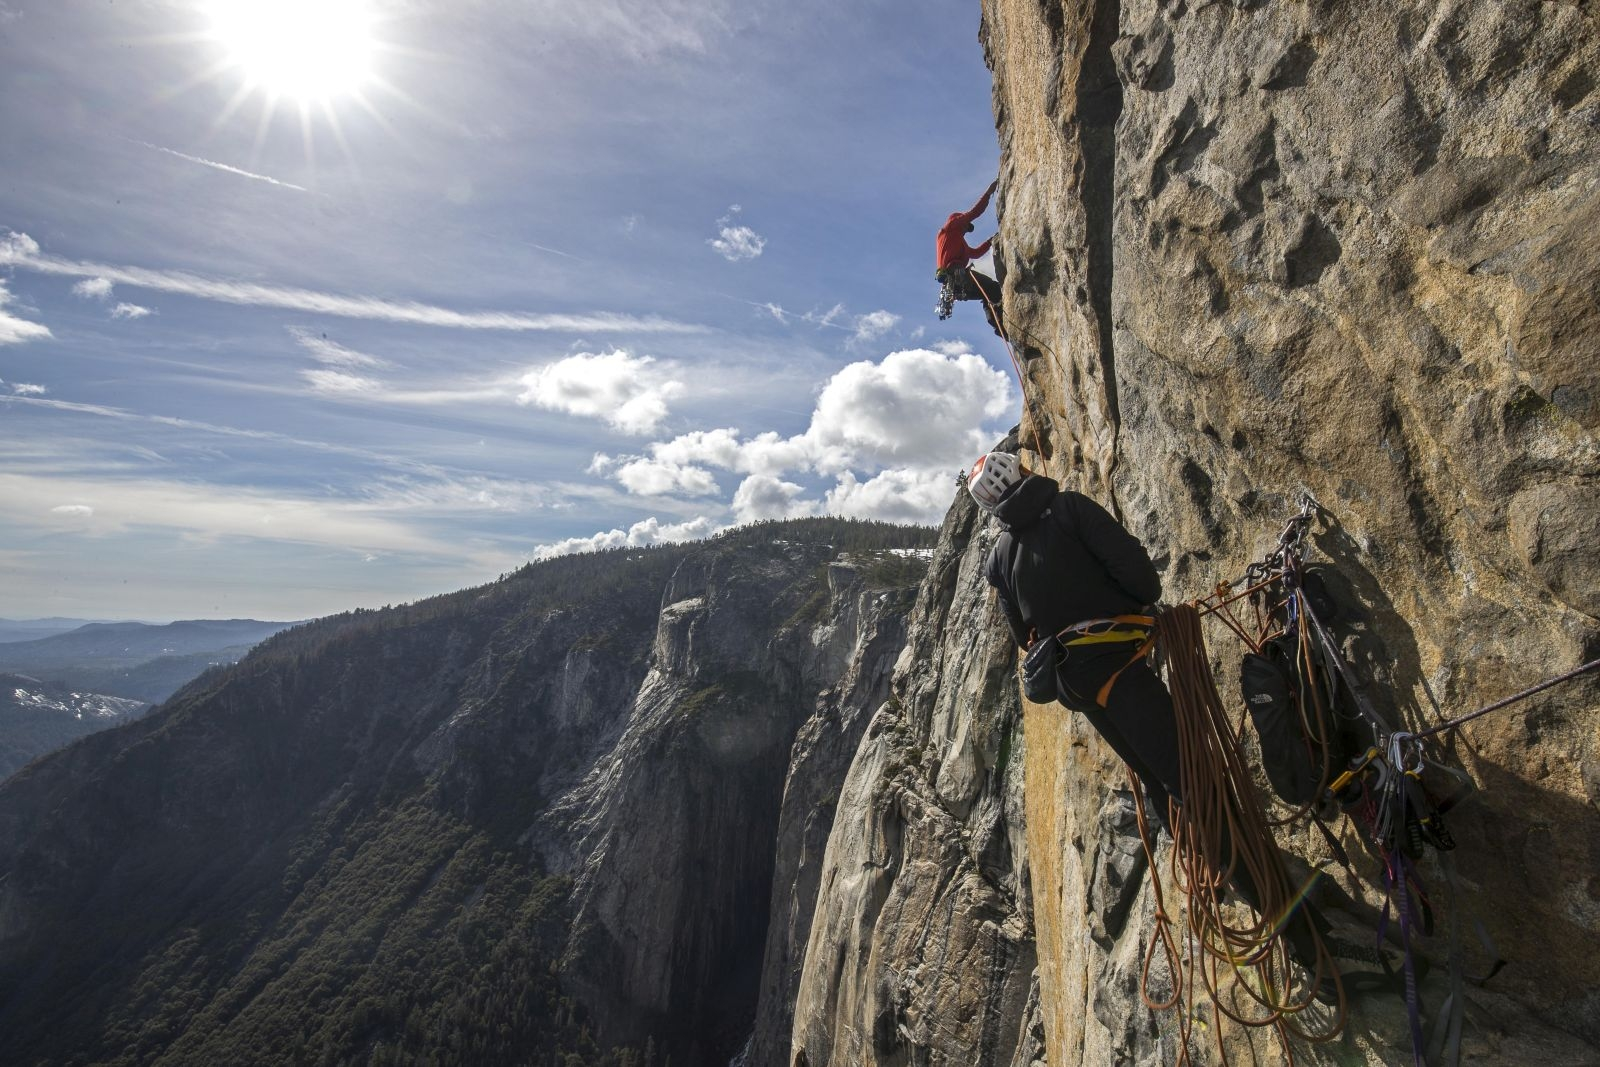 film,livre,aventure,montagne,free solo,alex honnold,oscar,2019,documentaire,national geographic,éditions guérin